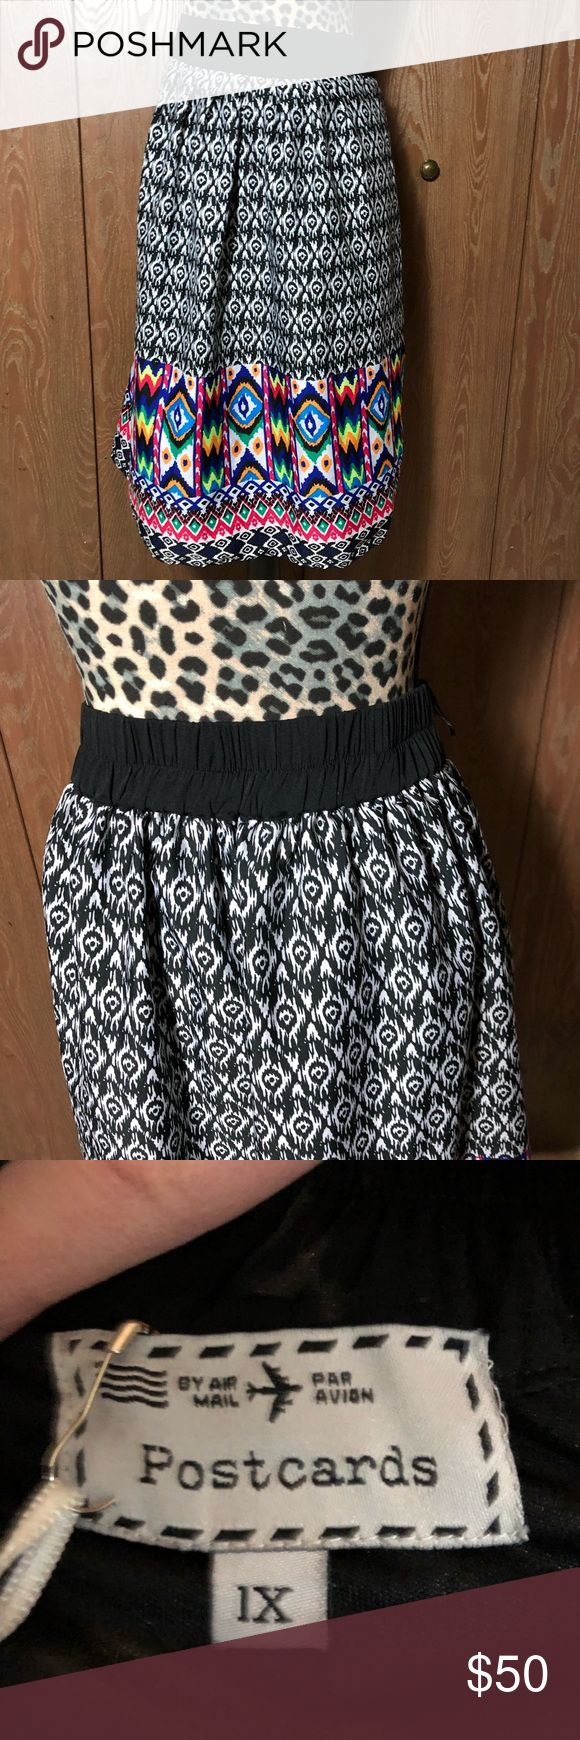 New Postcards Tribal Print Skirt New tribal patterned skirt from Postcards. Size 1x and it is 26 inches long. Has an elastic waist in the back.   💜All sales are going towards college tuition for the spring semester! I am majoring in Elementary Education and I love it! Thanks so much for helping me reach my goal of becoming a Kindergarten teacher!💙 Postcards Skirts